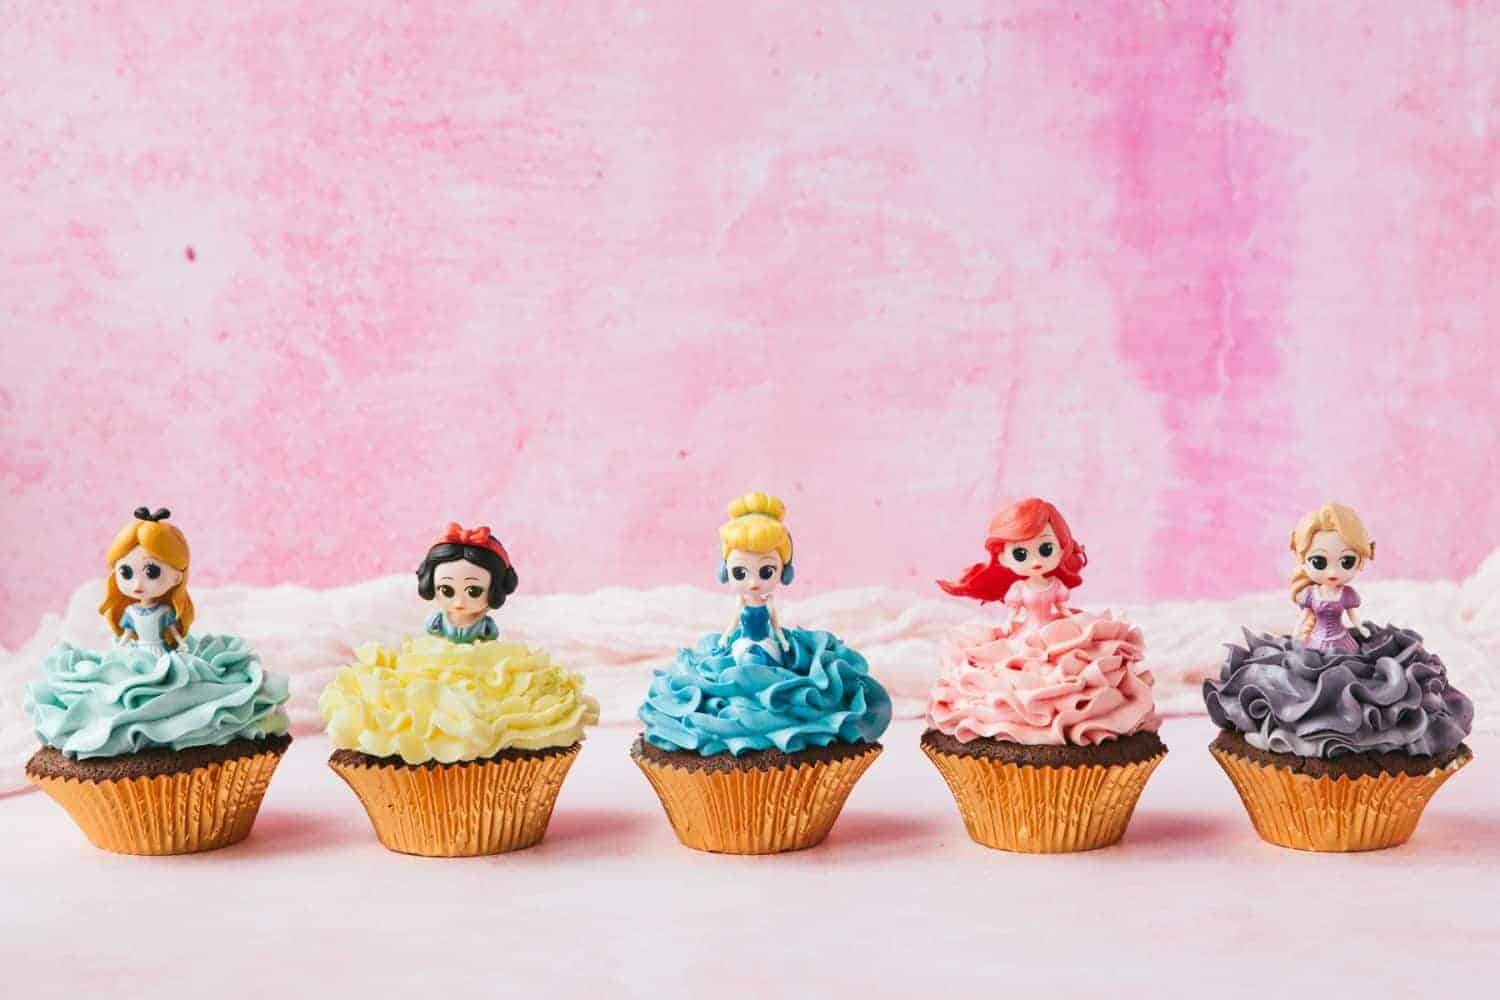 A row of Disney Princess Cupcakes. Alice in Wonderland, Snow White, Cinderella, Ariel and Rapunzel with coloured frosting.